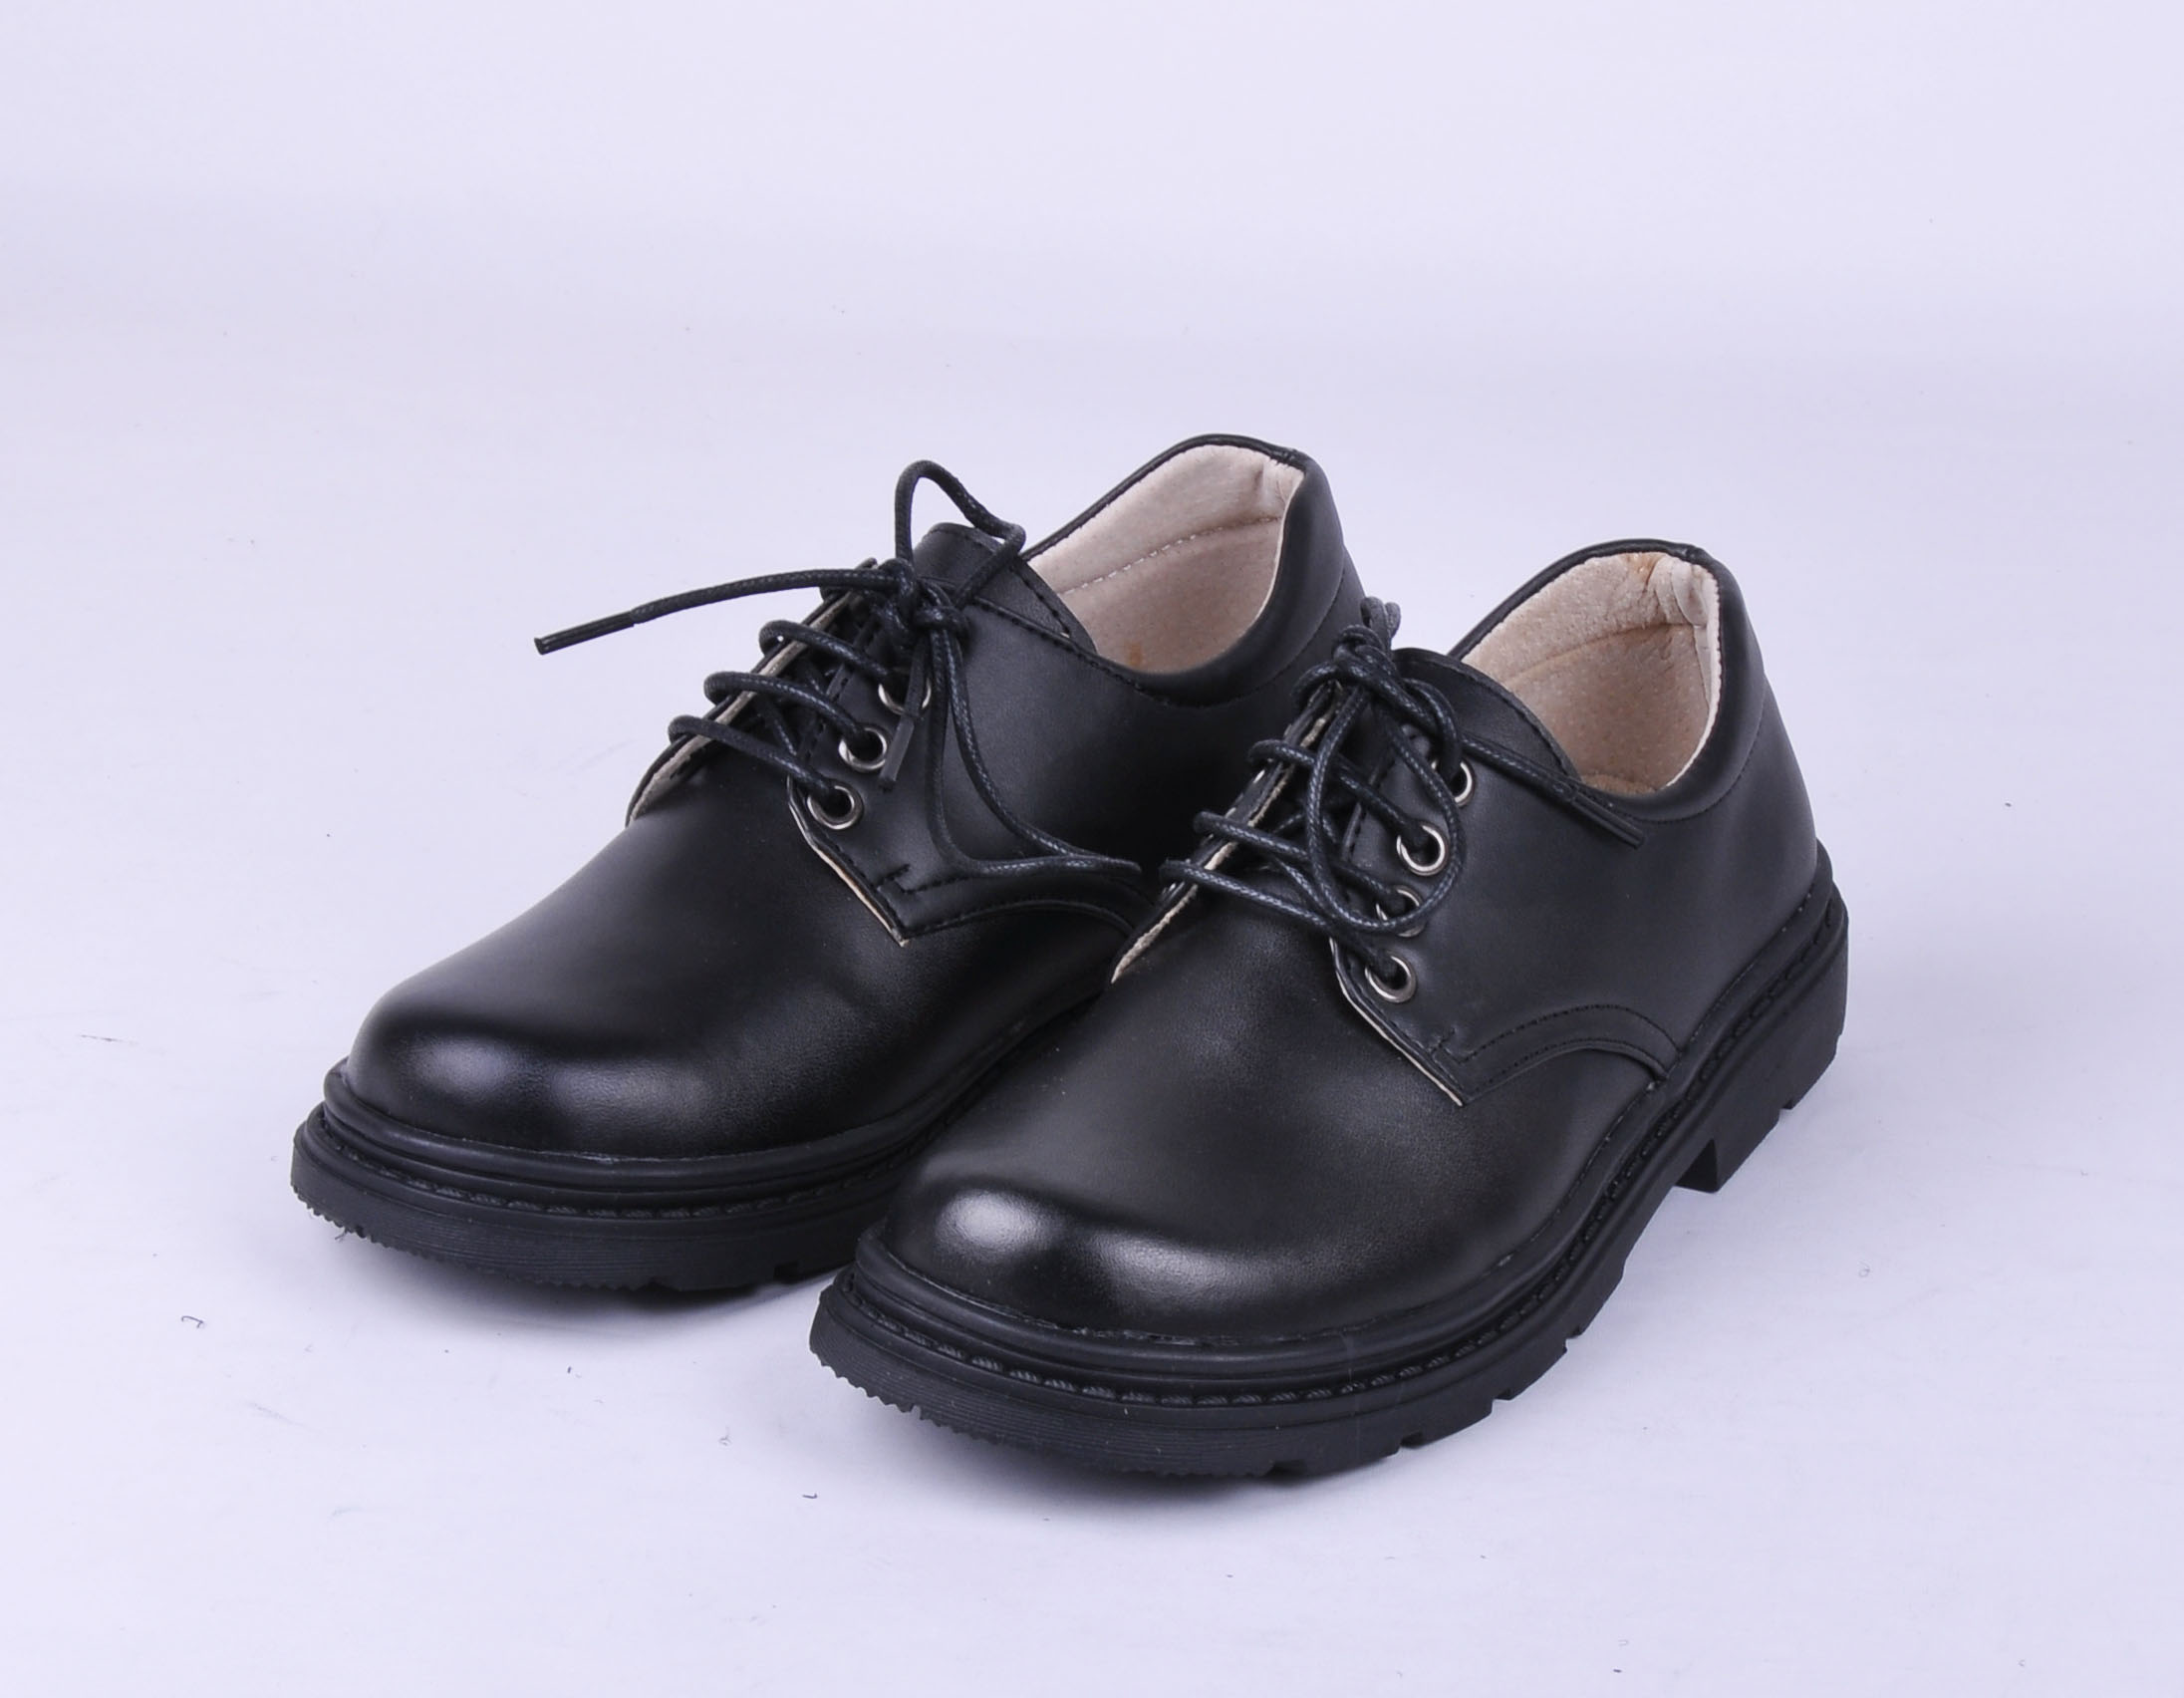 sepatulucu: Black Leather Shoes For Girls Images